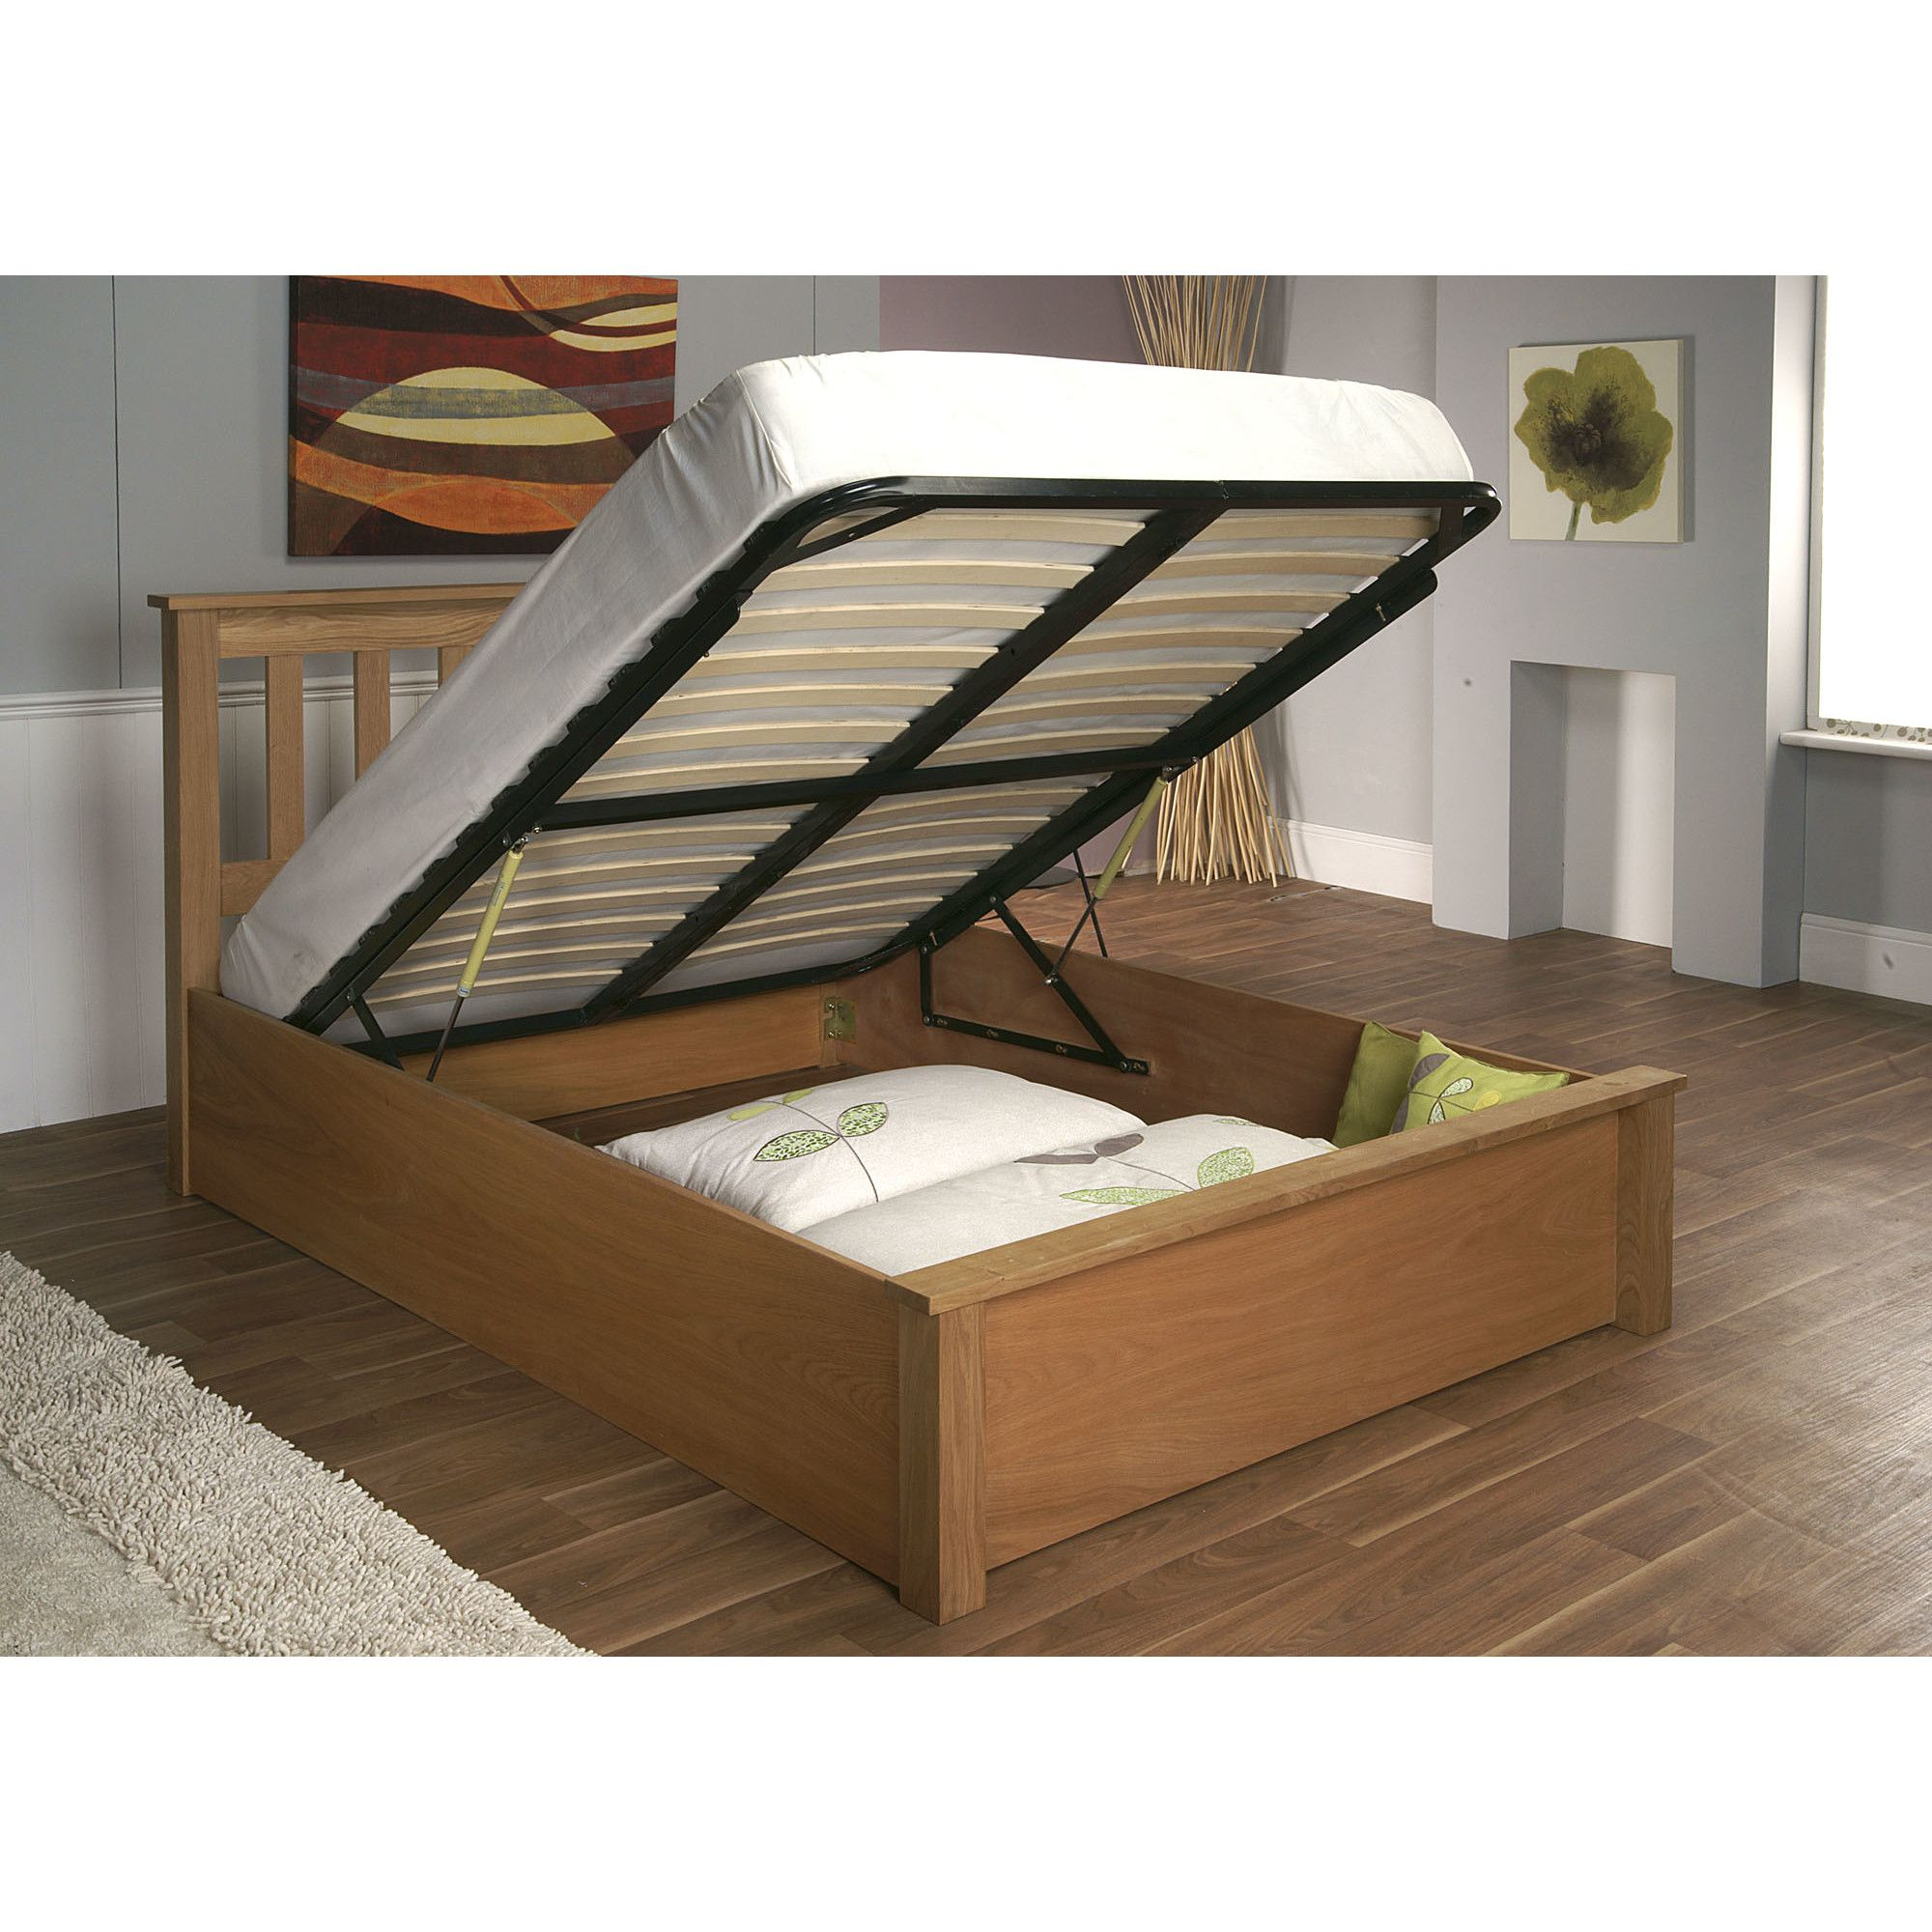 Limelight Terran Ottoman Bed Bed frame with storage